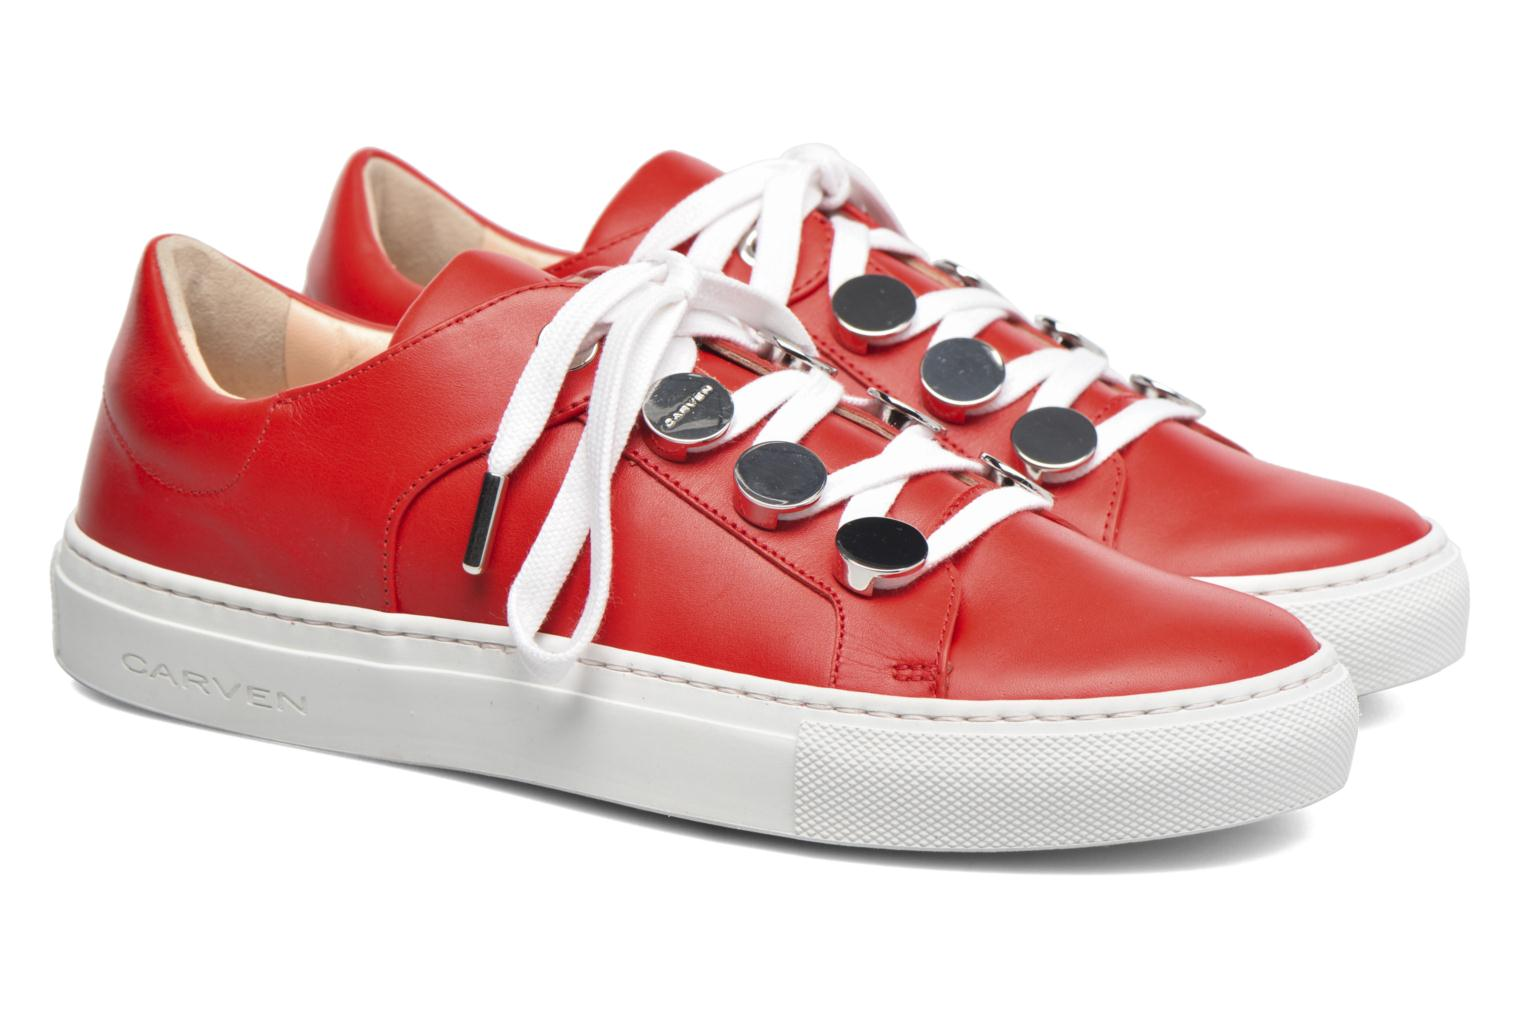 Sneakers Carven Resonance 2 Rood 3/4'